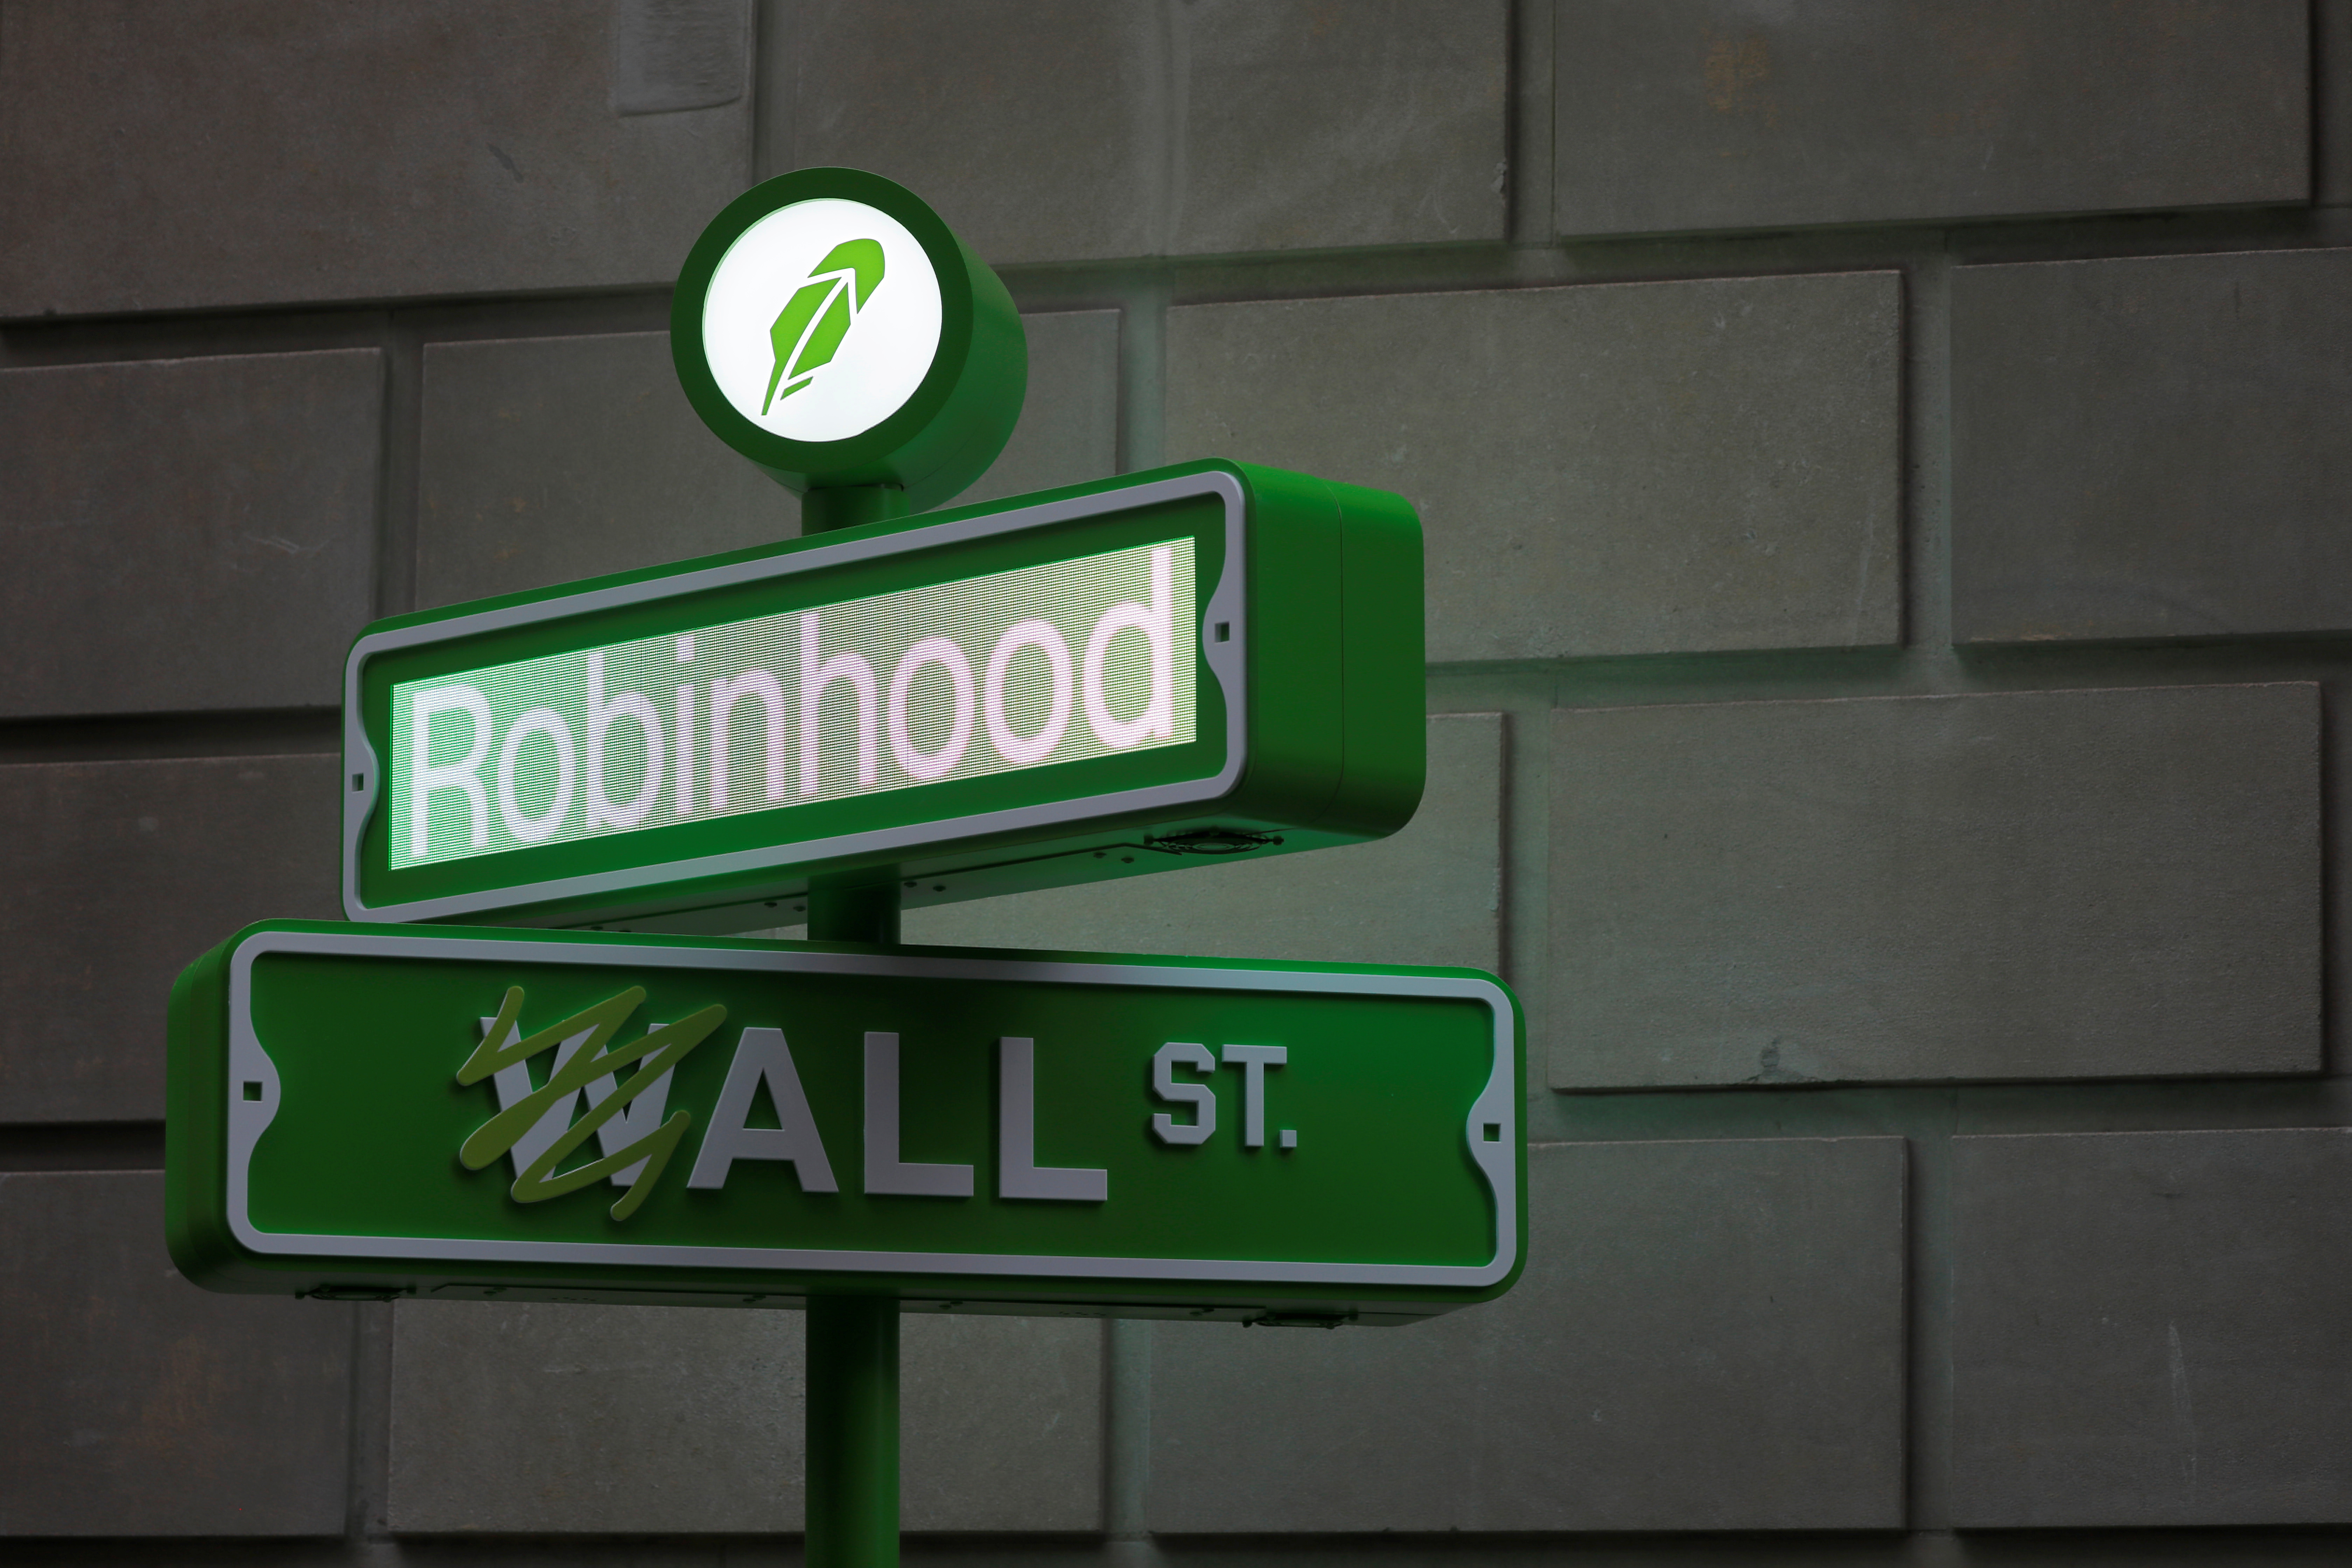 The logo of Robinhood Markets is displayed at a pop-up event on Wall Street after the company's IPO in New York City, July 29, 2021. REUTERS/Andrew Kelly